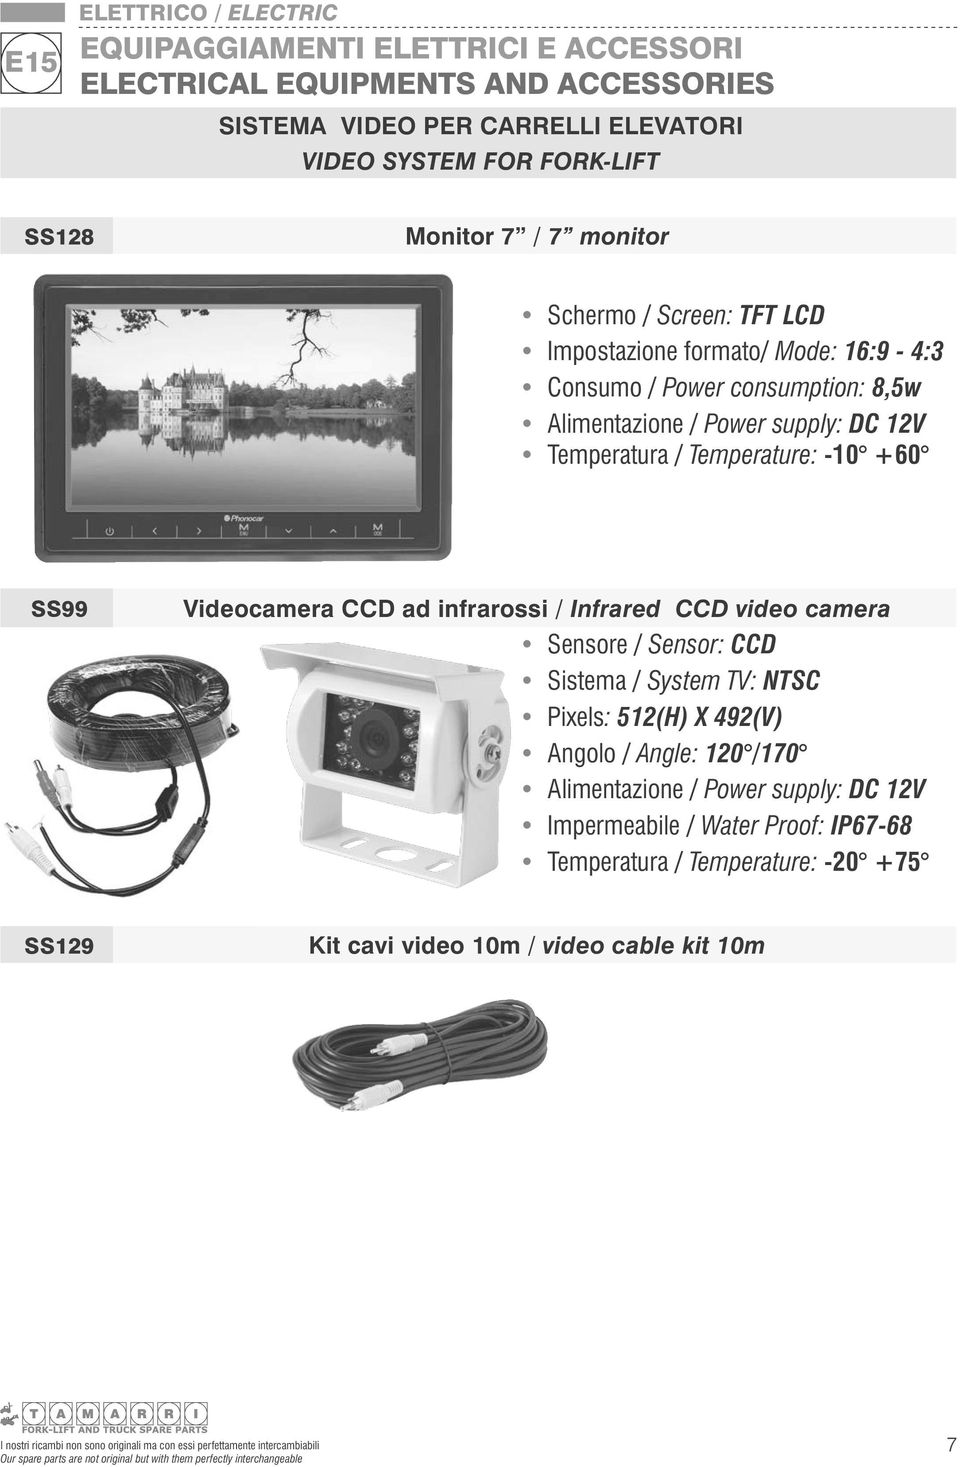 Sensore / Sensor: CCD Sistema / System TV: NTSC Pixels: 512(H) X 492(V) Angolo / Angle: 120 /170 Alimentazione / Power supply: DC 12V Impermeabile / Water Proof: